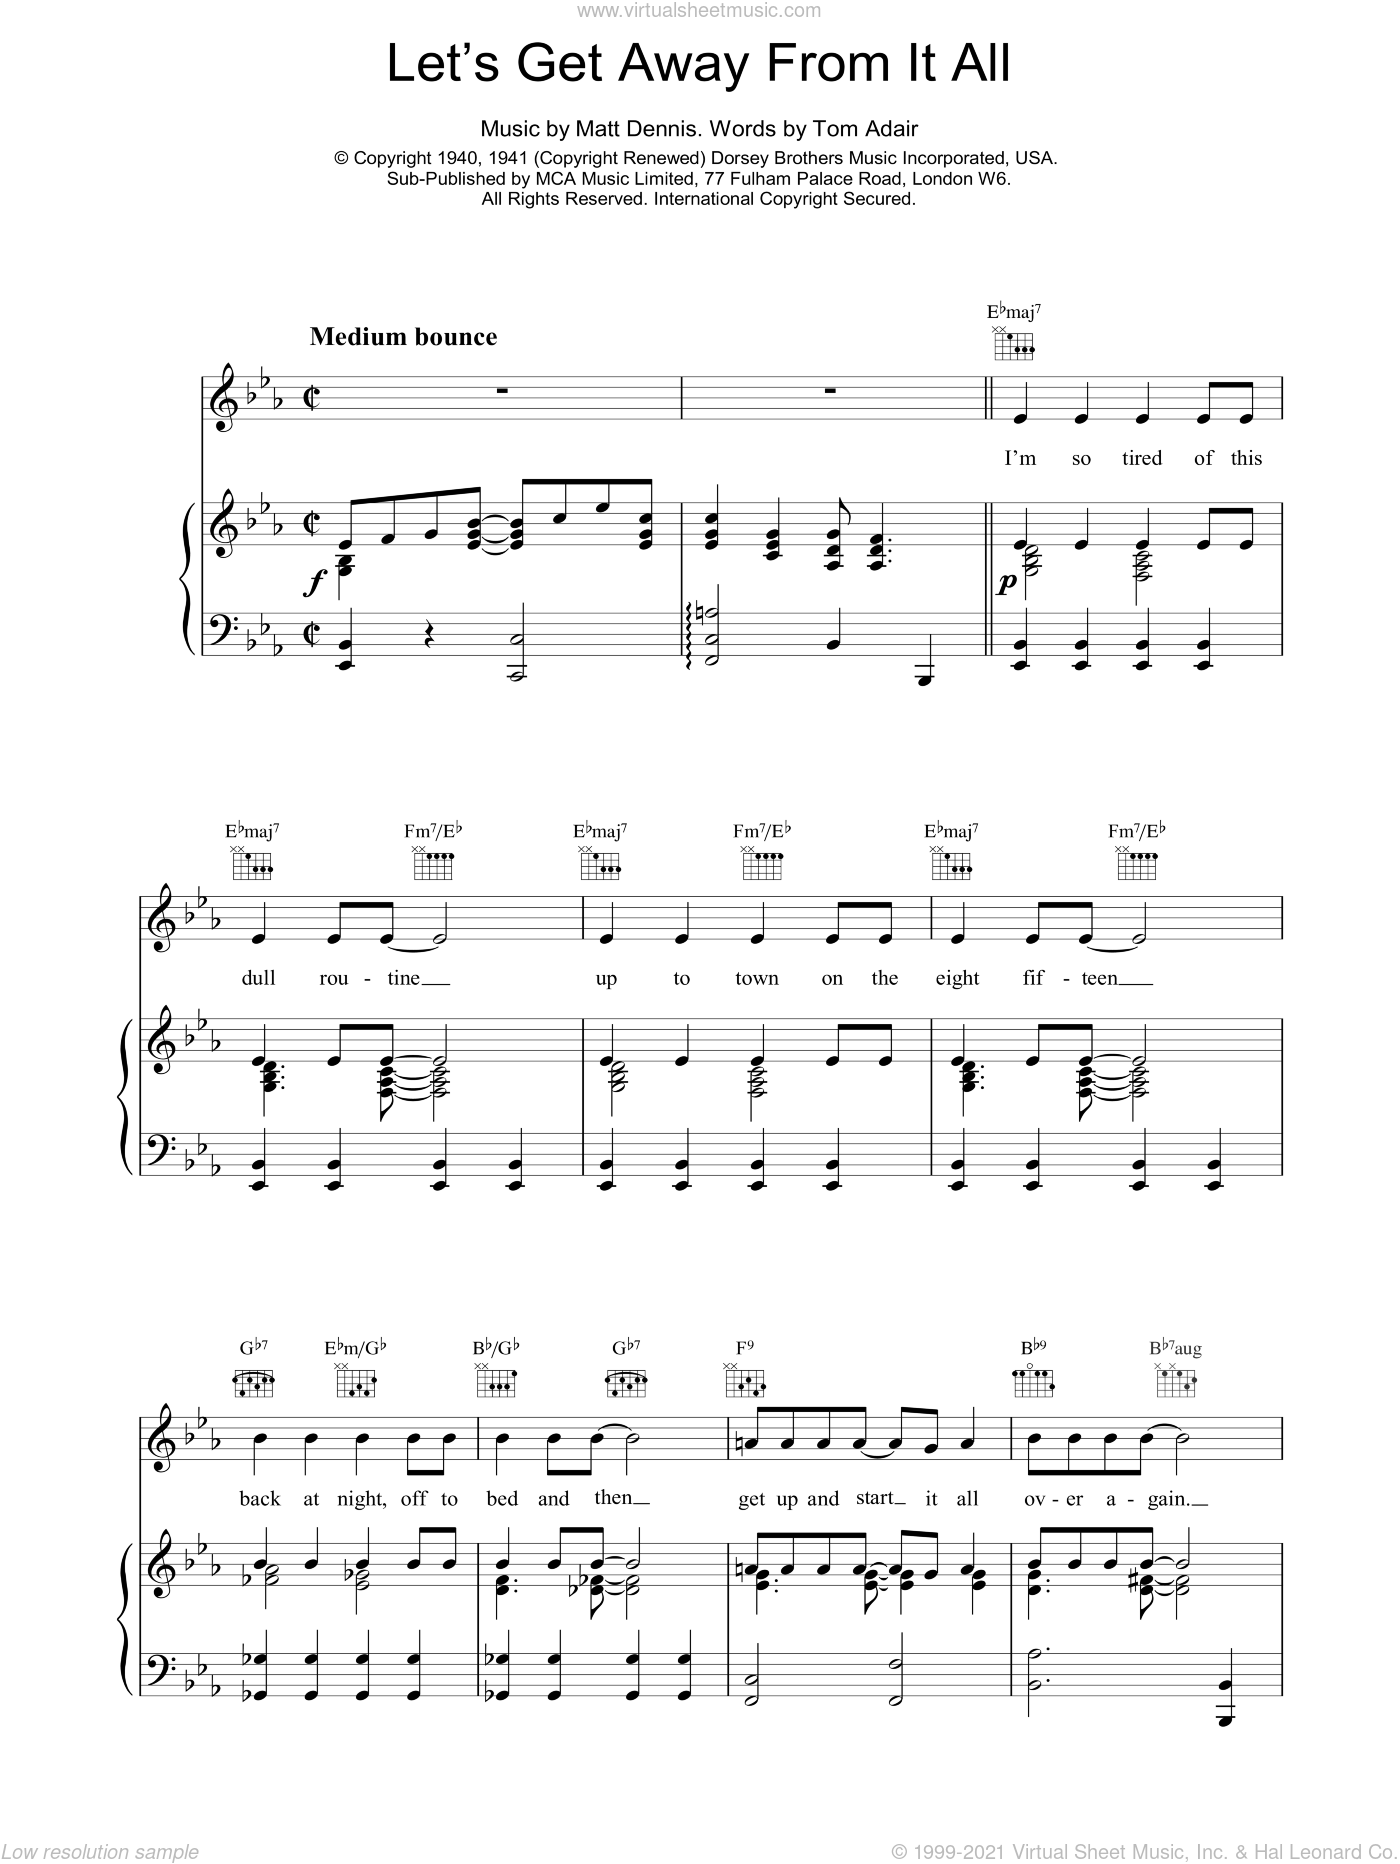 Let's Get Away From It All sheet music for voice, piano or guitar by Tom Adair and Frank Sinatra. Score Image Preview.